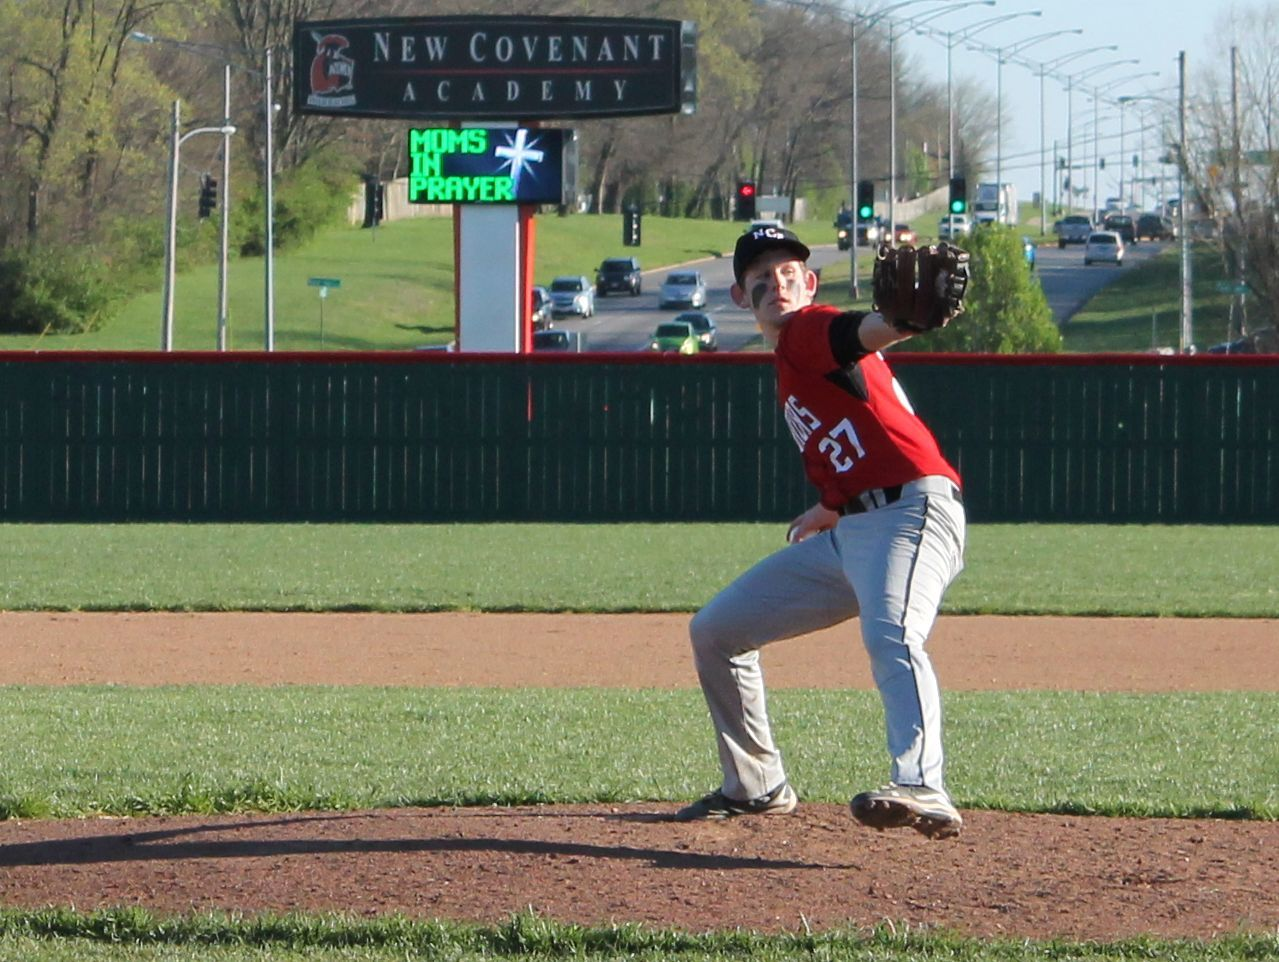 New Covenant Academy senior Ben Cannefax pitched a no-hitter Tuesday, March 28, 2017 in an 8-0 win over Pleasant Hope at Federal Protection Field in Springfield.